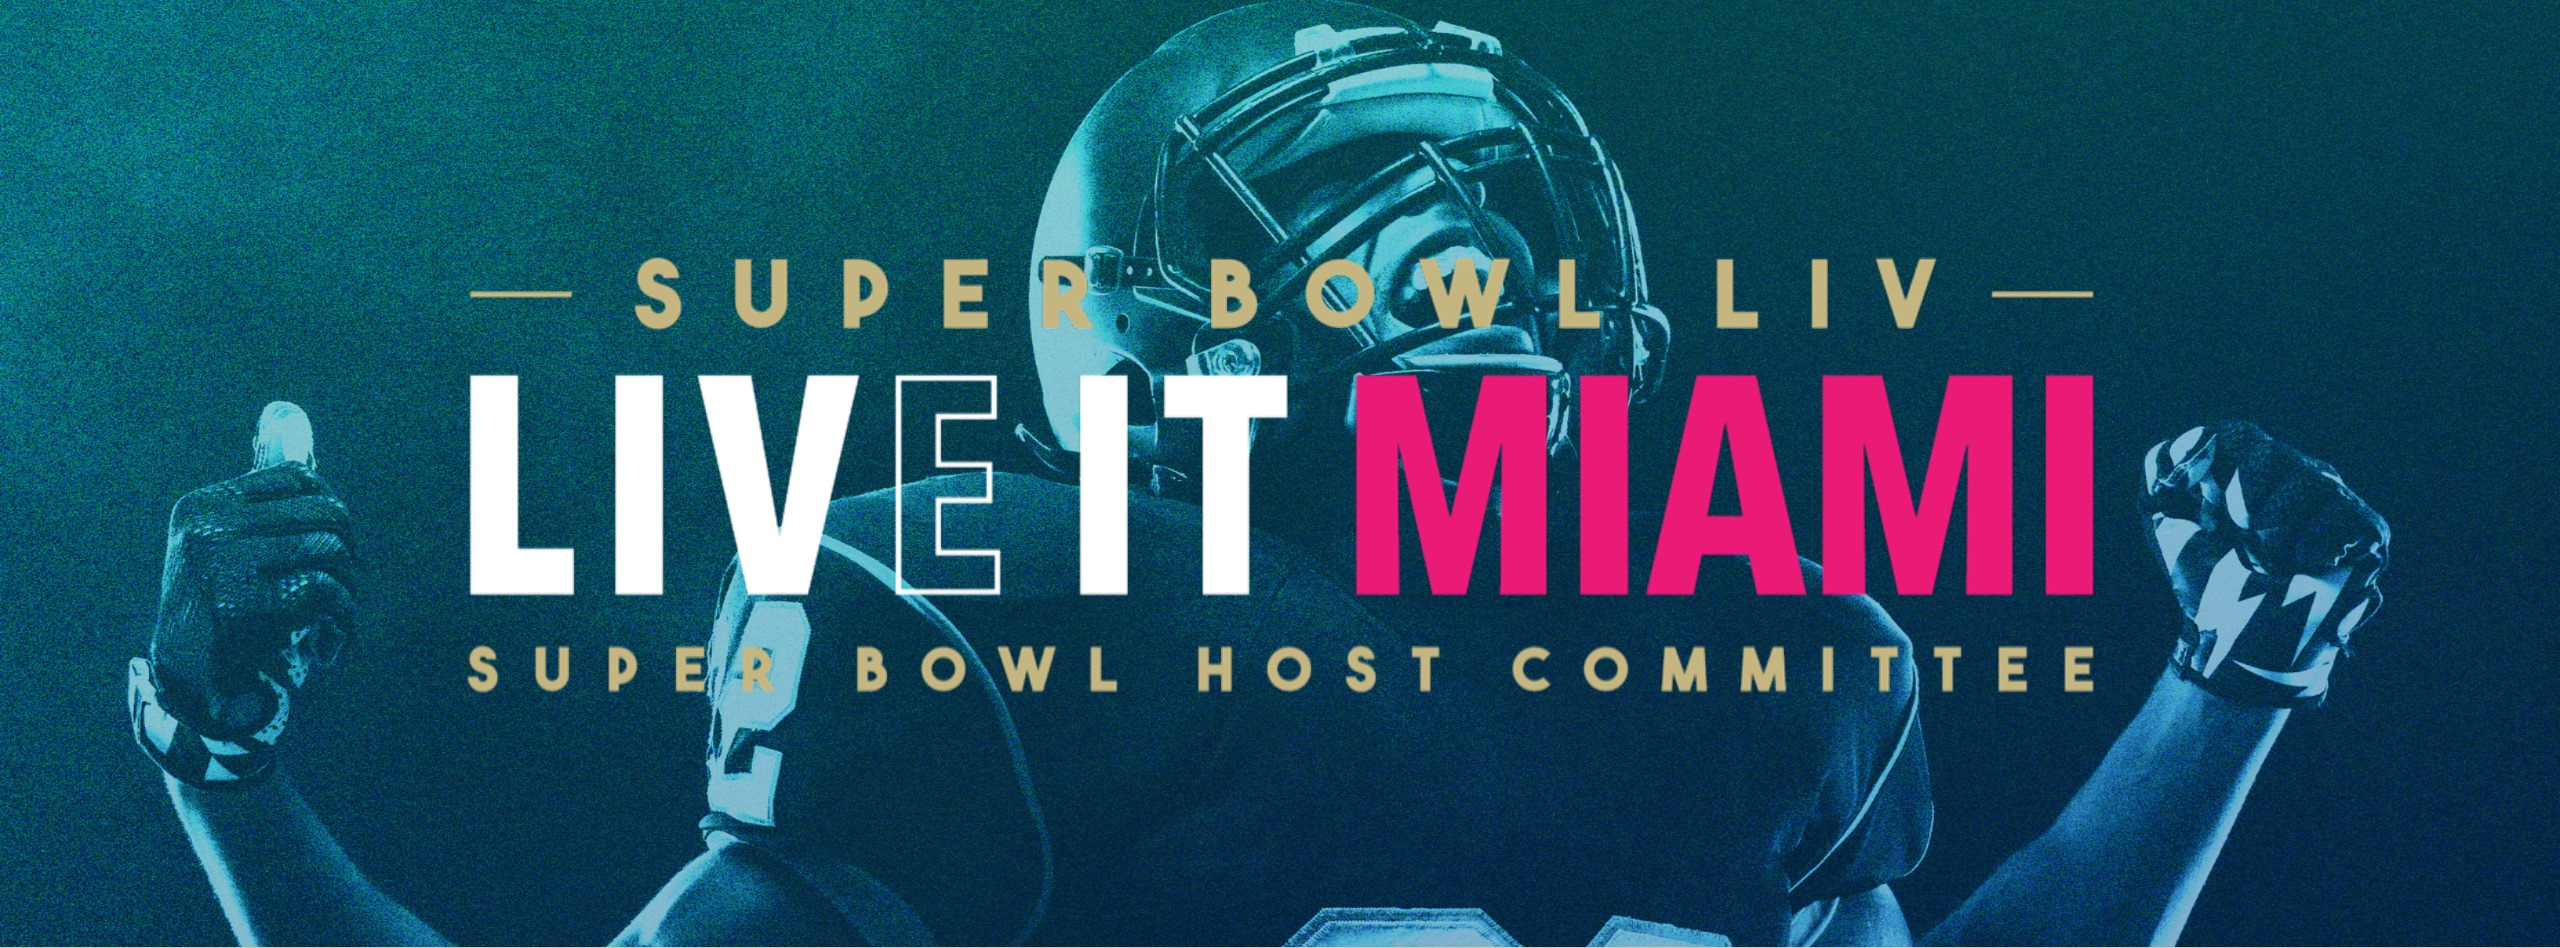 Photo from https://www.miasbliv.com/ Super Bowl LIV Live It Miami Super Boal Host Committee